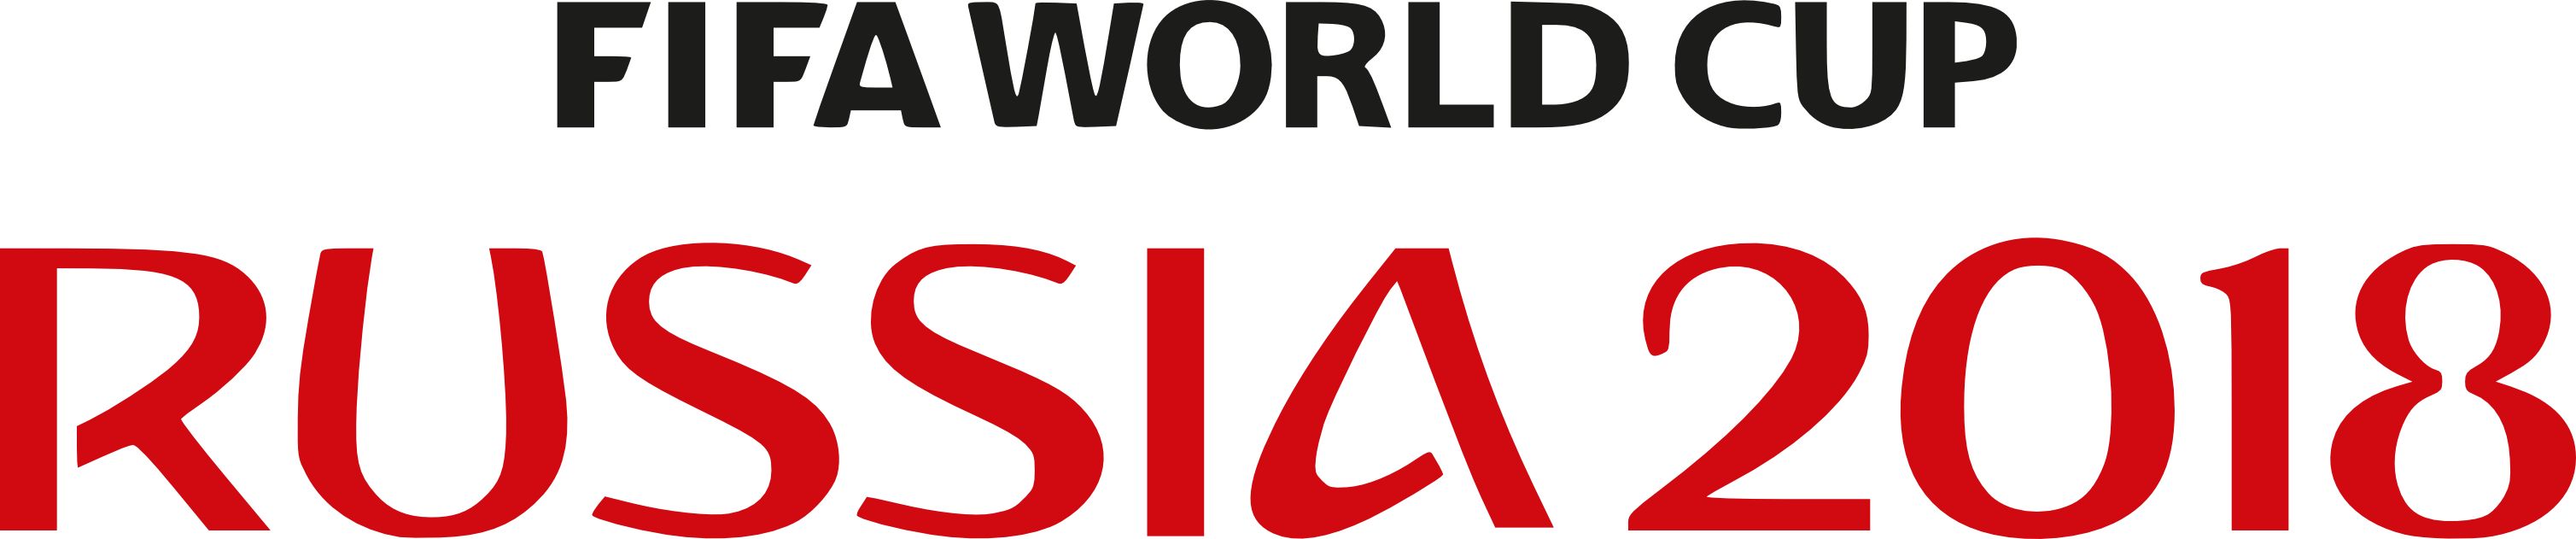 Filefifa World Cup Russia  Logo Png